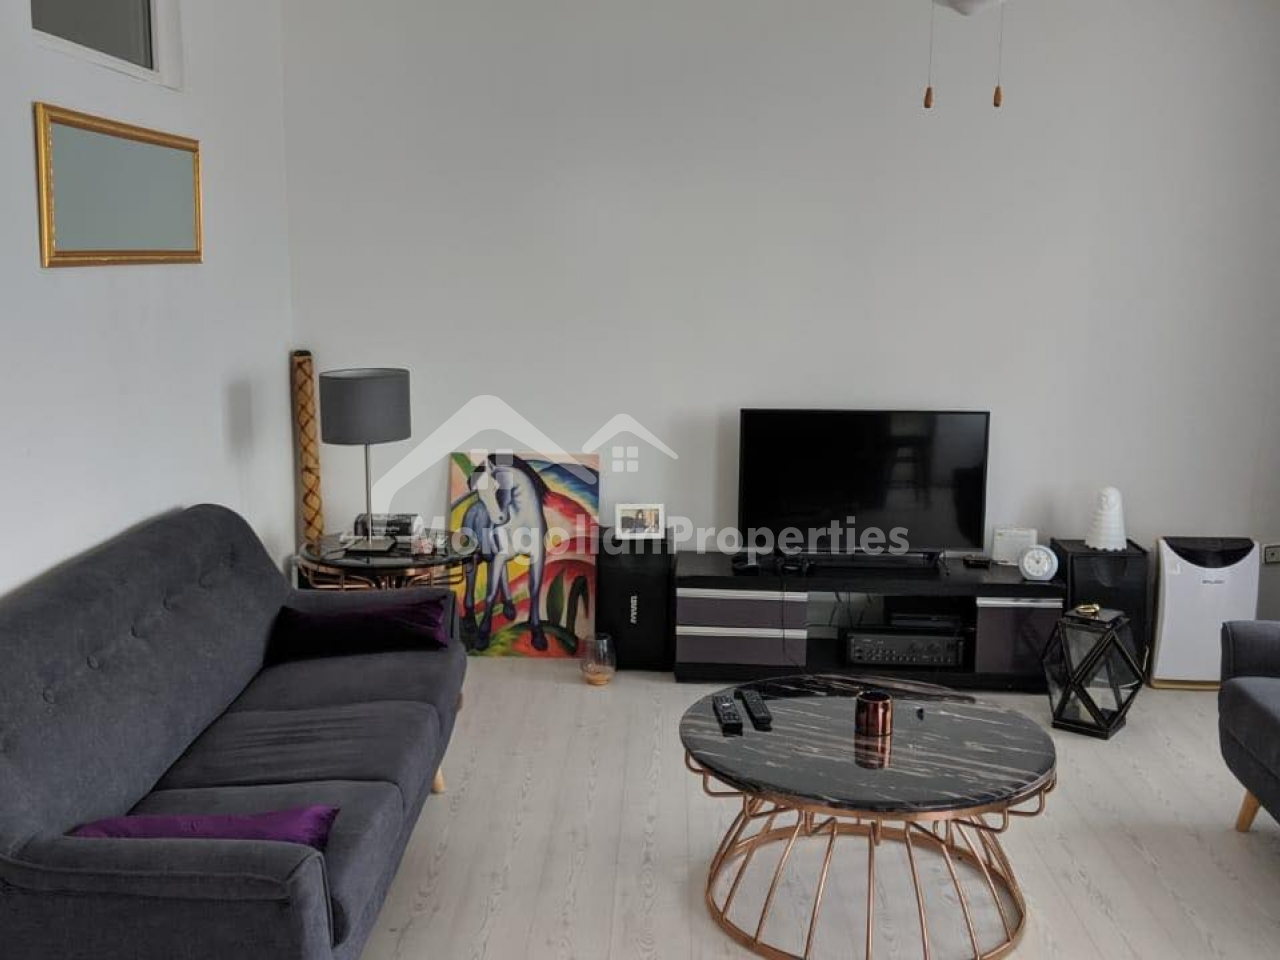 For rent: Cozy 1 bedroom apartment is for rent near Bayangol hotel